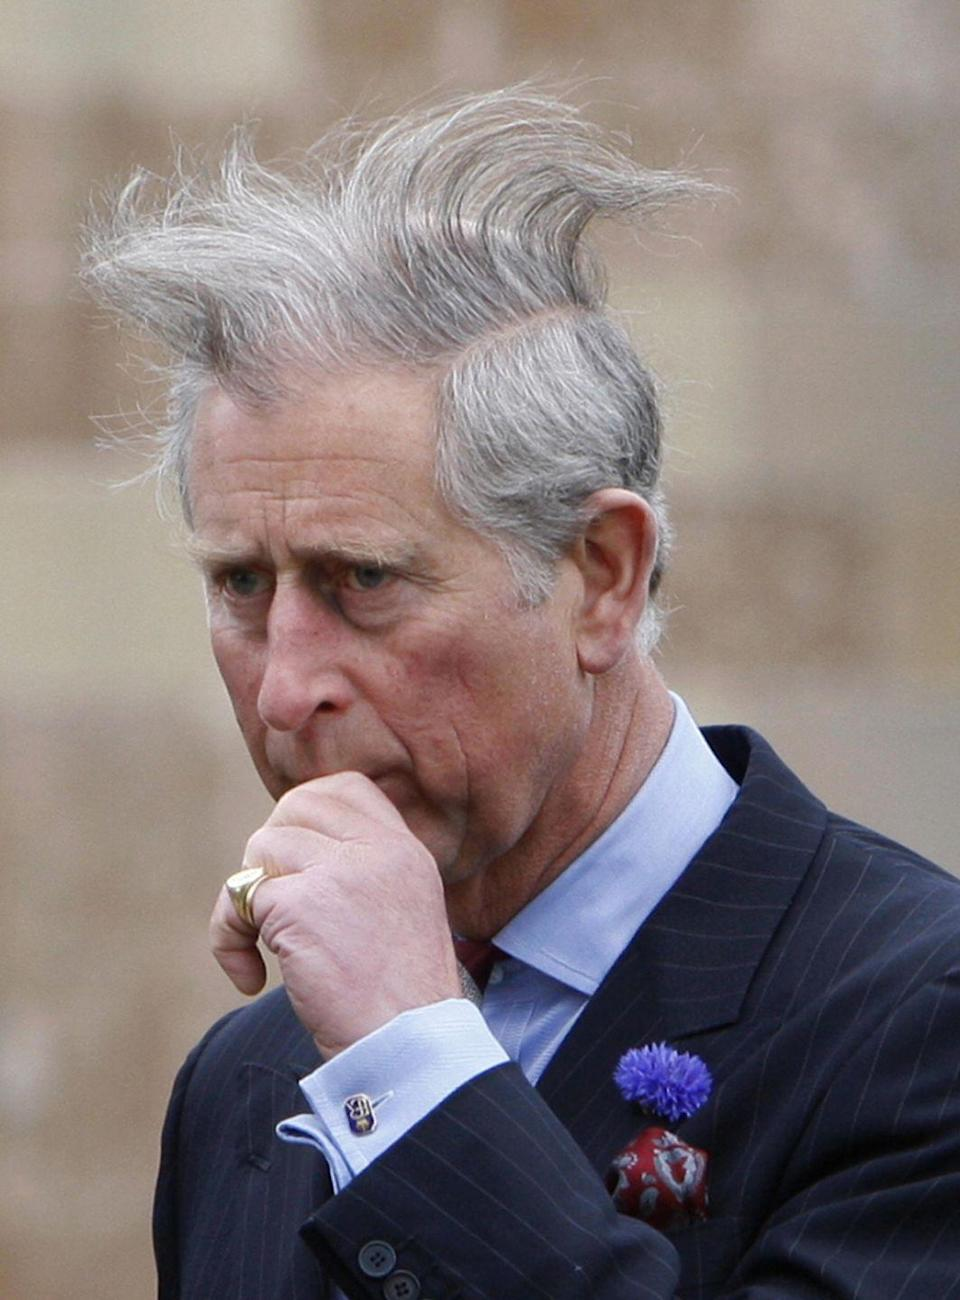 <p>Even royals have bad hair days. Prince Charles walks to a garden party during a visit to Northern Ireland. </p>